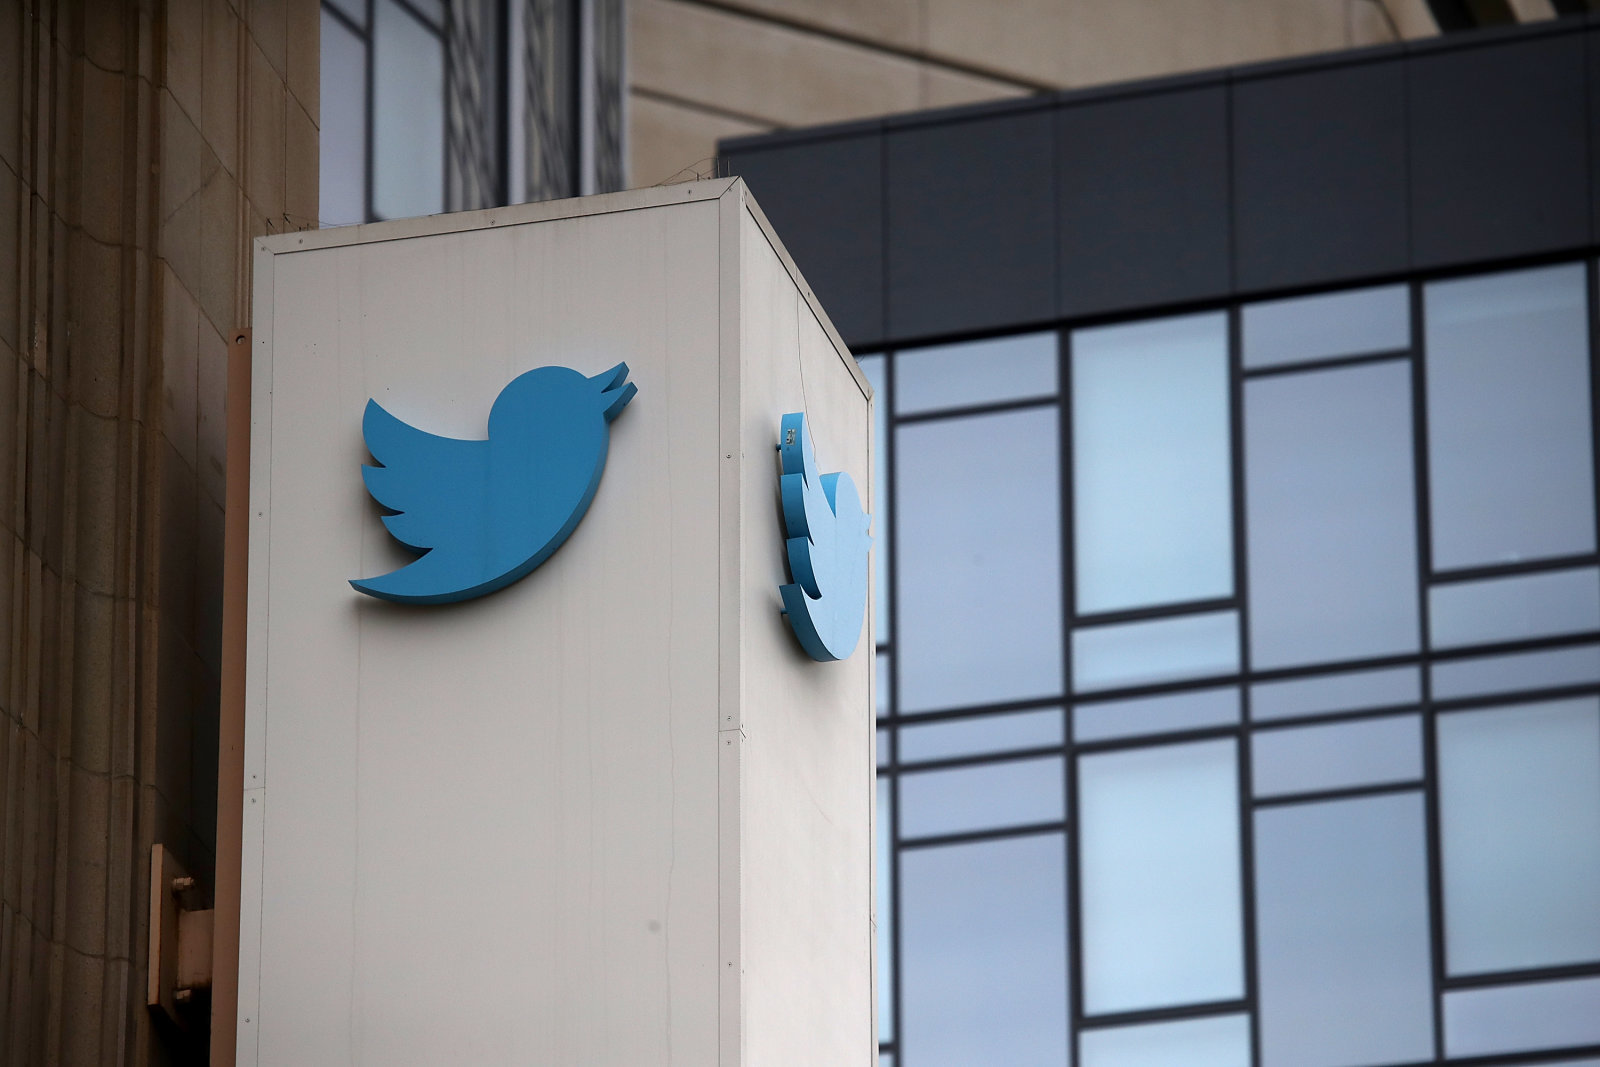 Twitter bug accidentally caused it to collect unauthorized